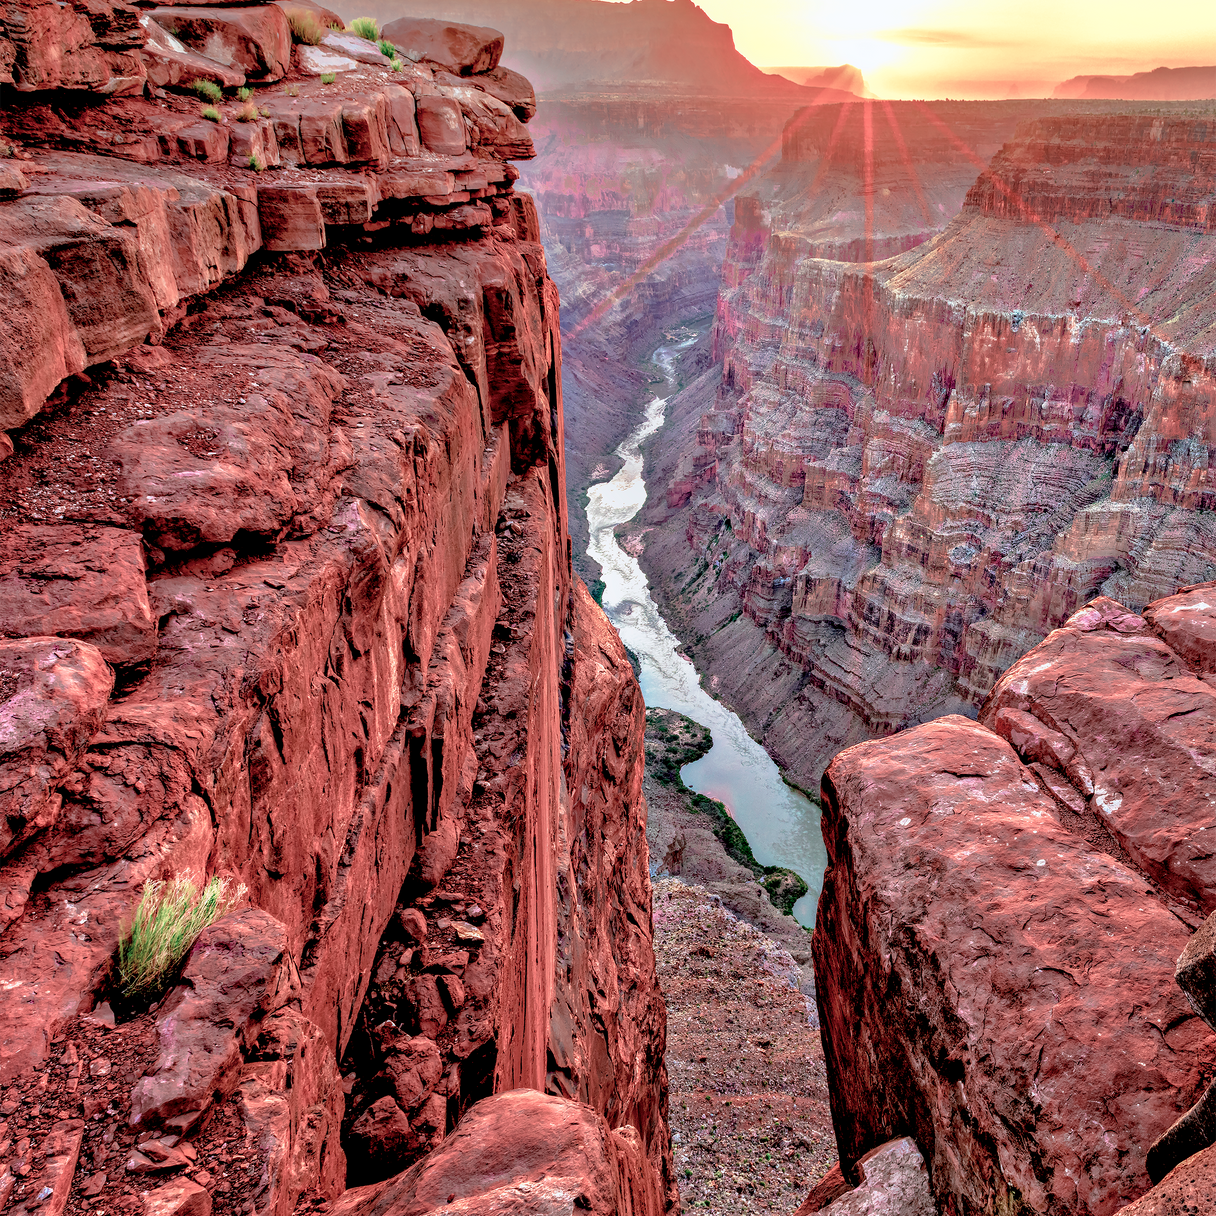 The iconic view of the Toroweep Overlook